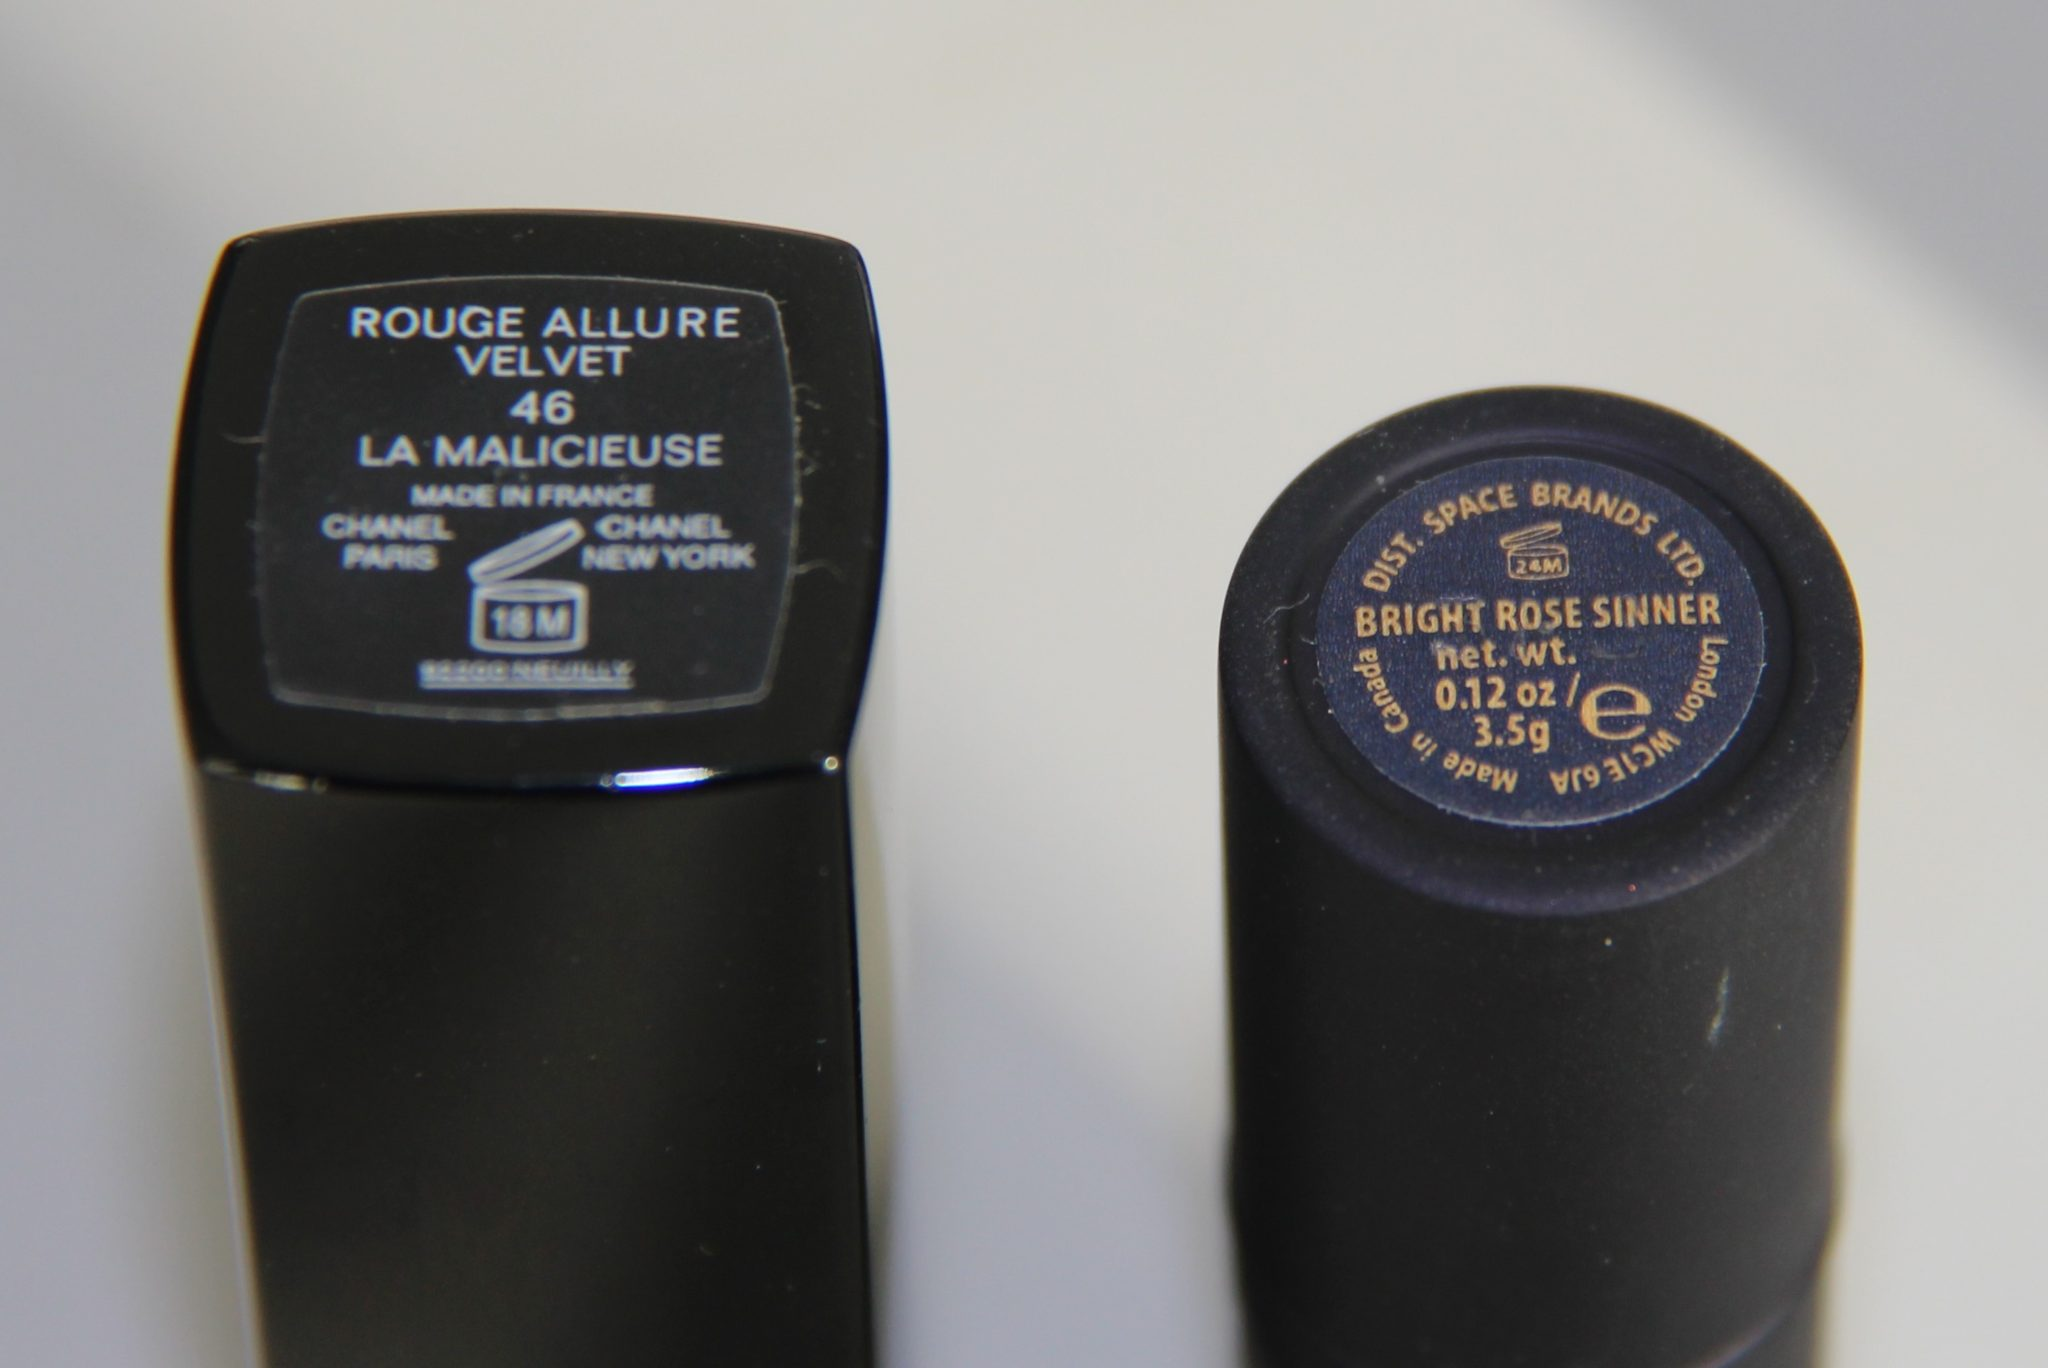 Rouge à lèvres chanel malicieuse lipstick queen sinner bright rose